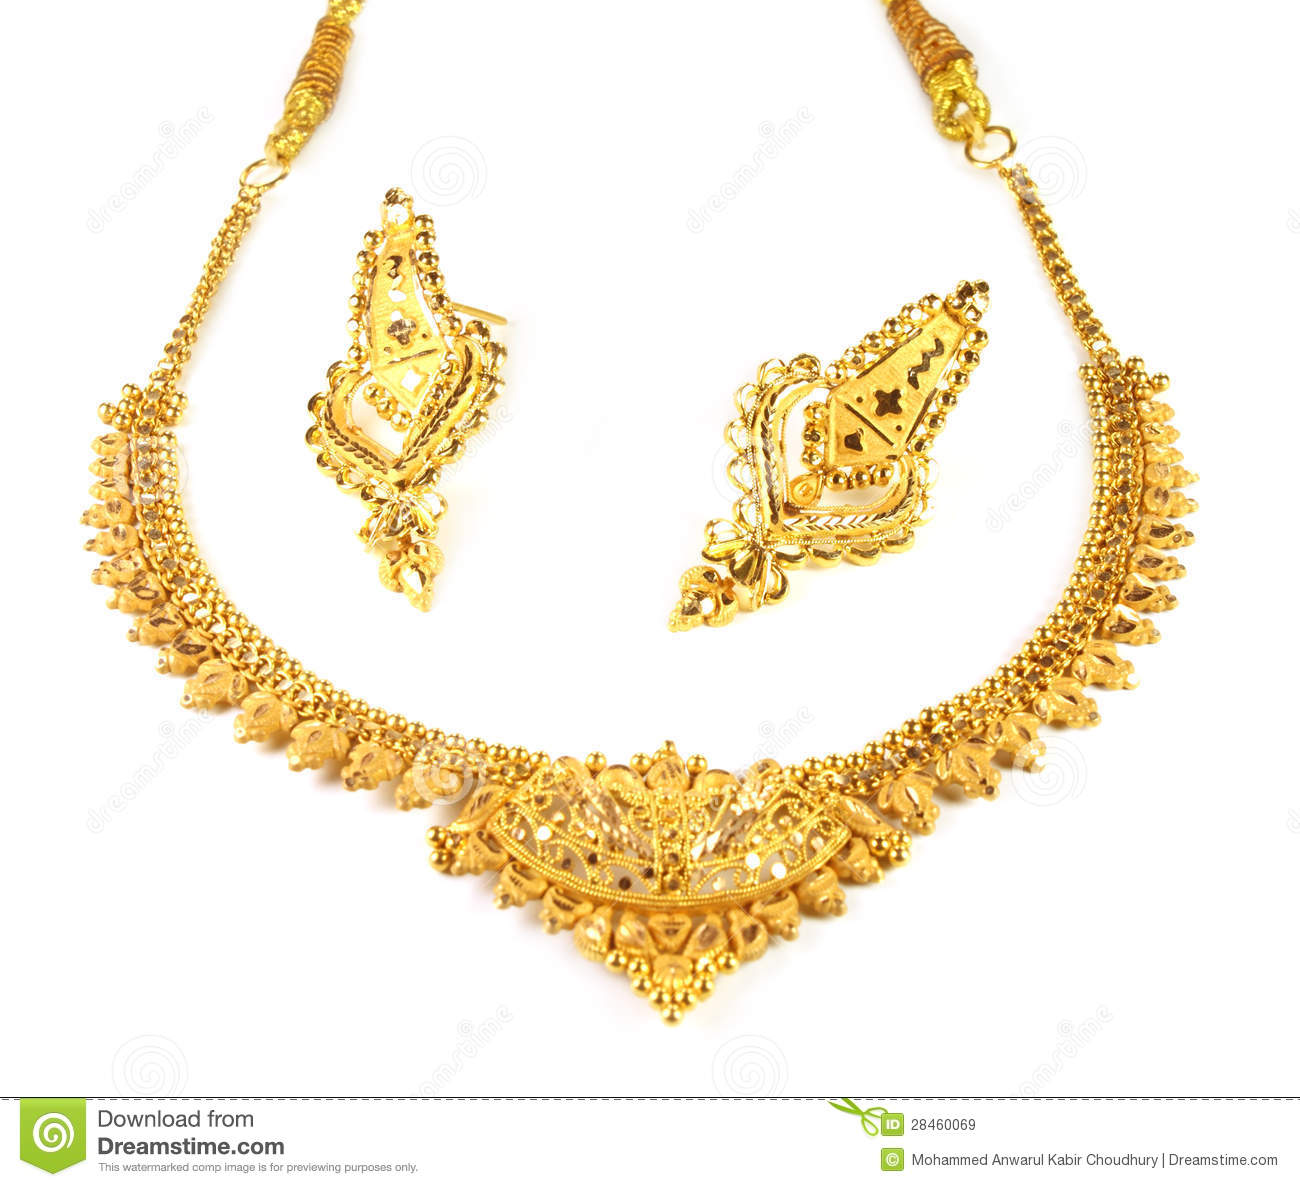 Wedding Gold Necklace With Earrings Stock Image - Image of gift ...